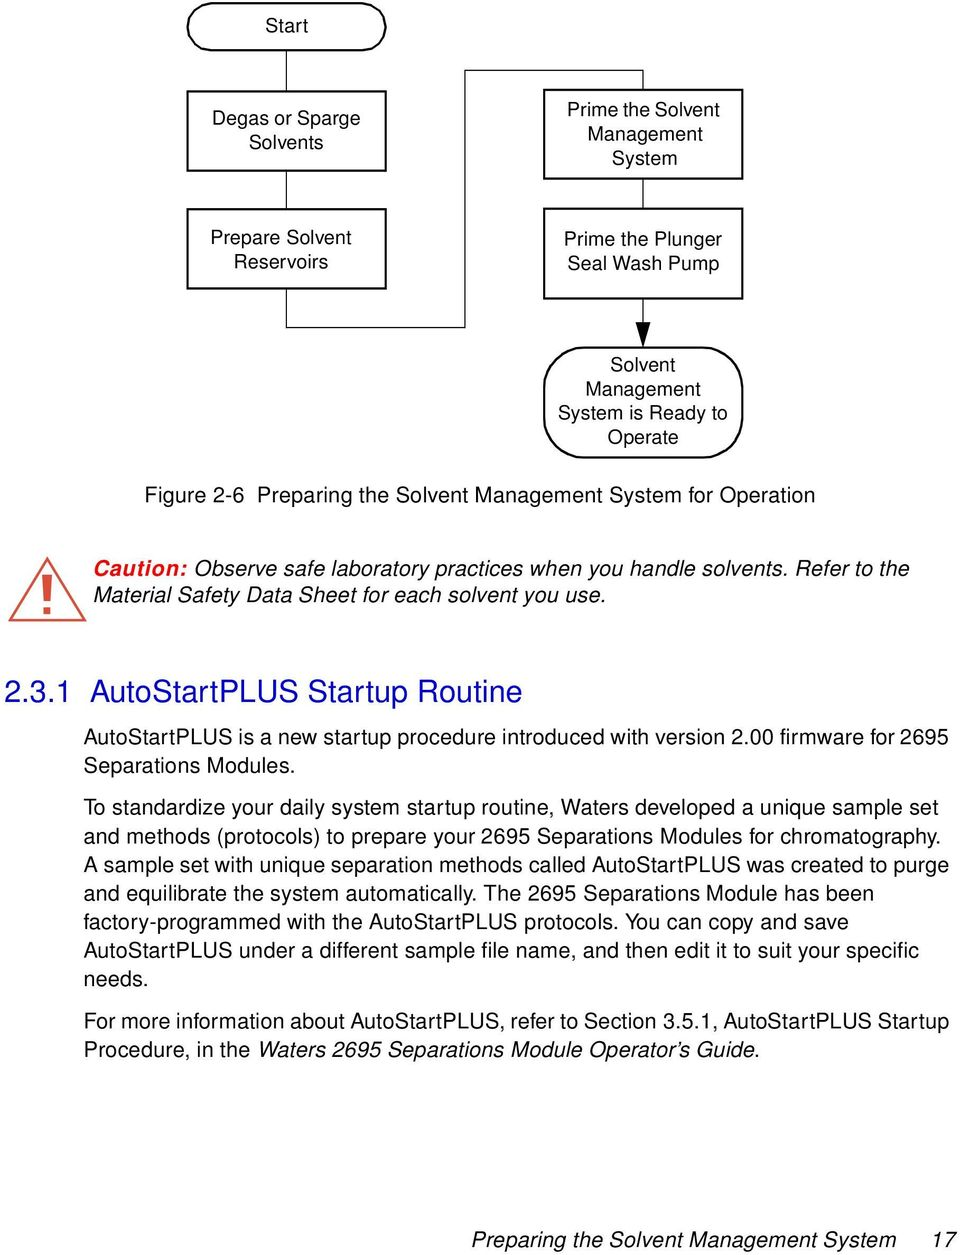 1 AutoStartPLUS Startup Routine AutoStartPLUS is a new startup procedure introduced with version 2.00 firmware for 2695 Separations Modules.